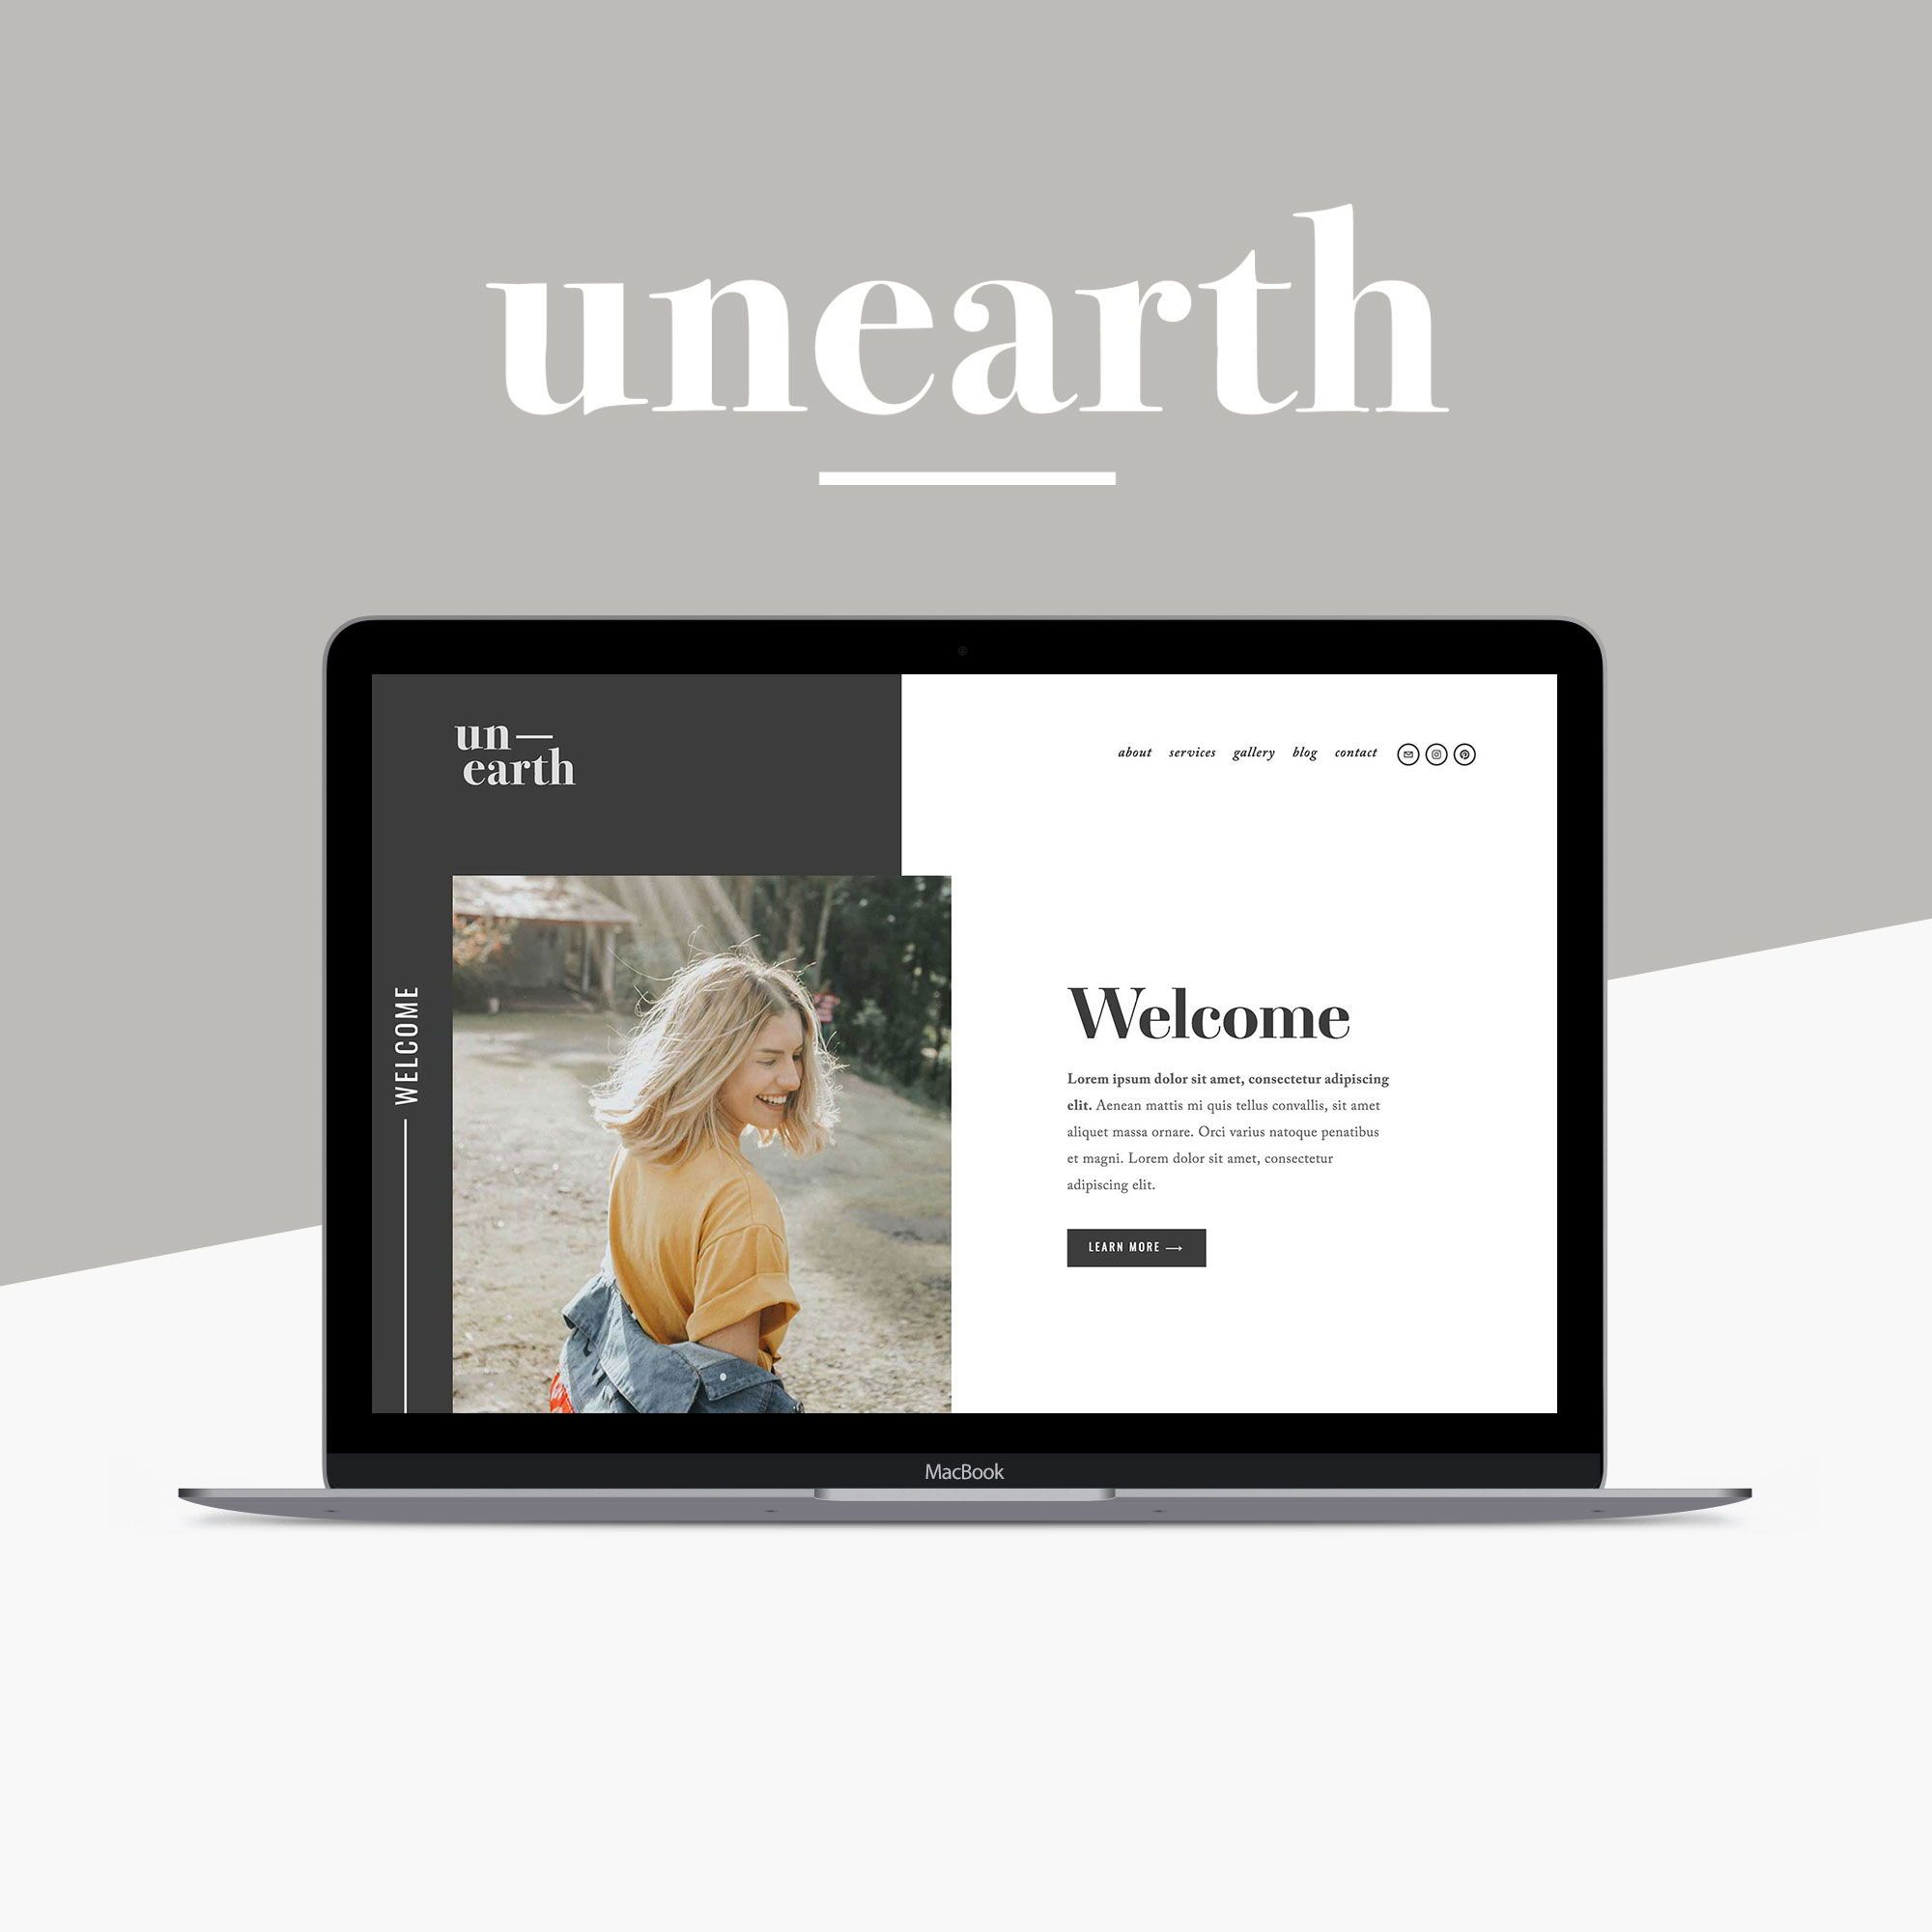 Unearth Squarespace Template Is A Modern And Artistic Website